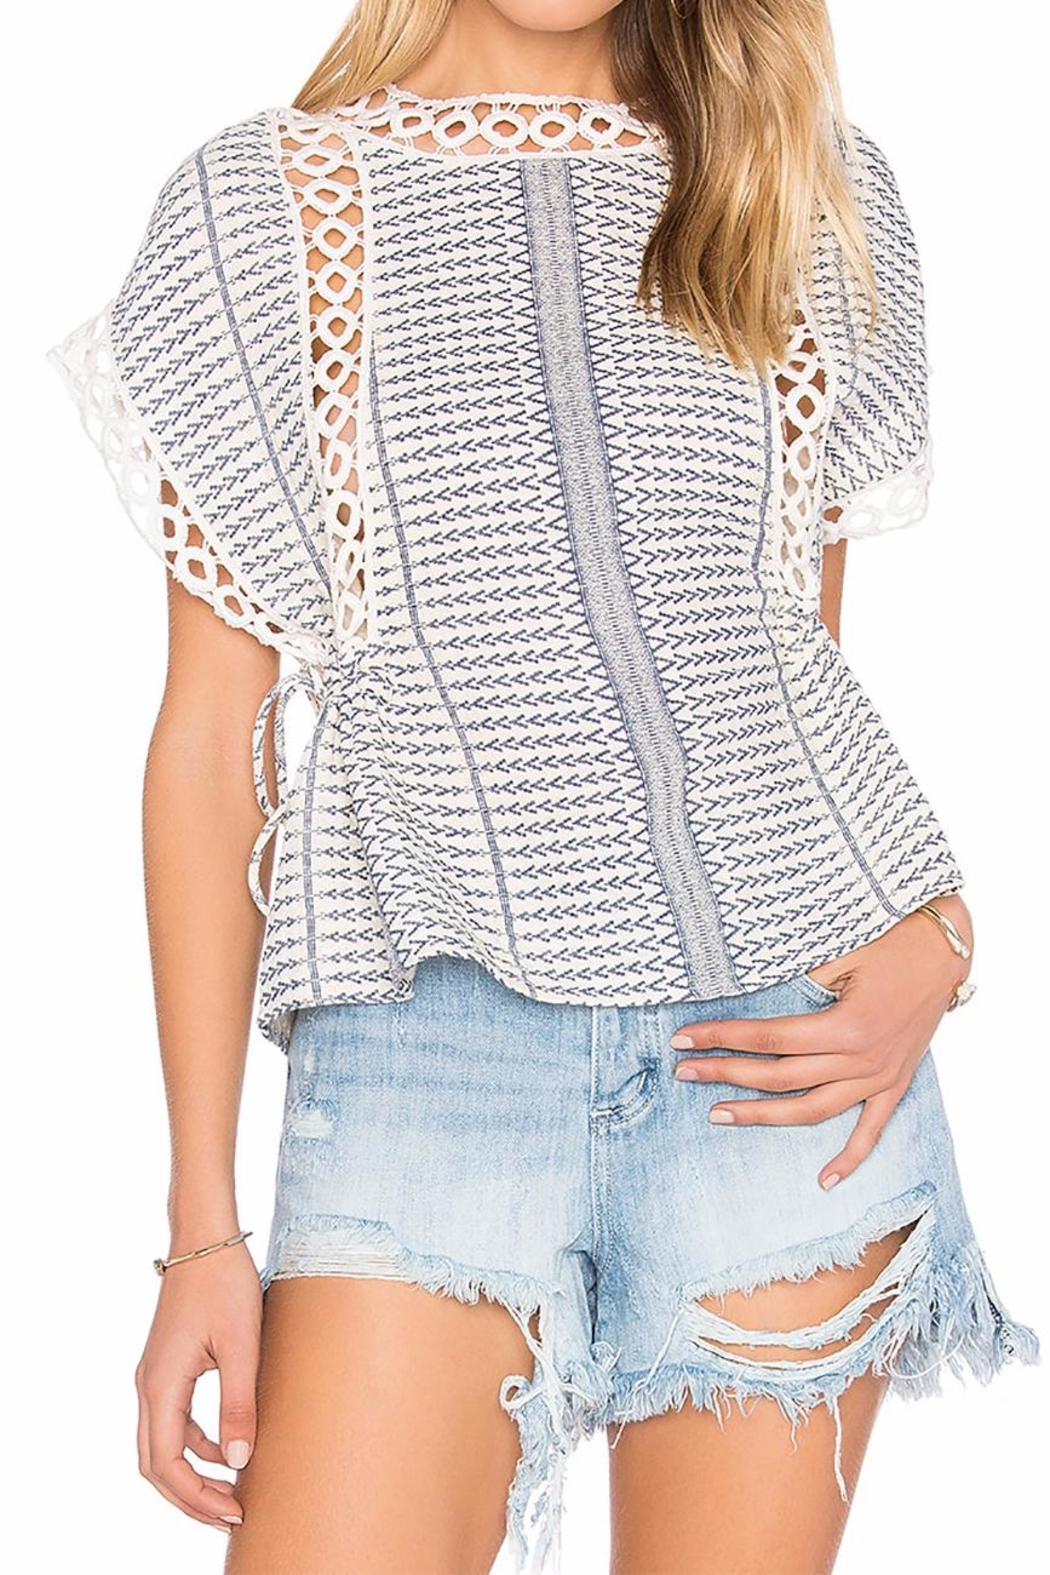 Tularosa  Marla Embroidered Top - Front Cropped Image